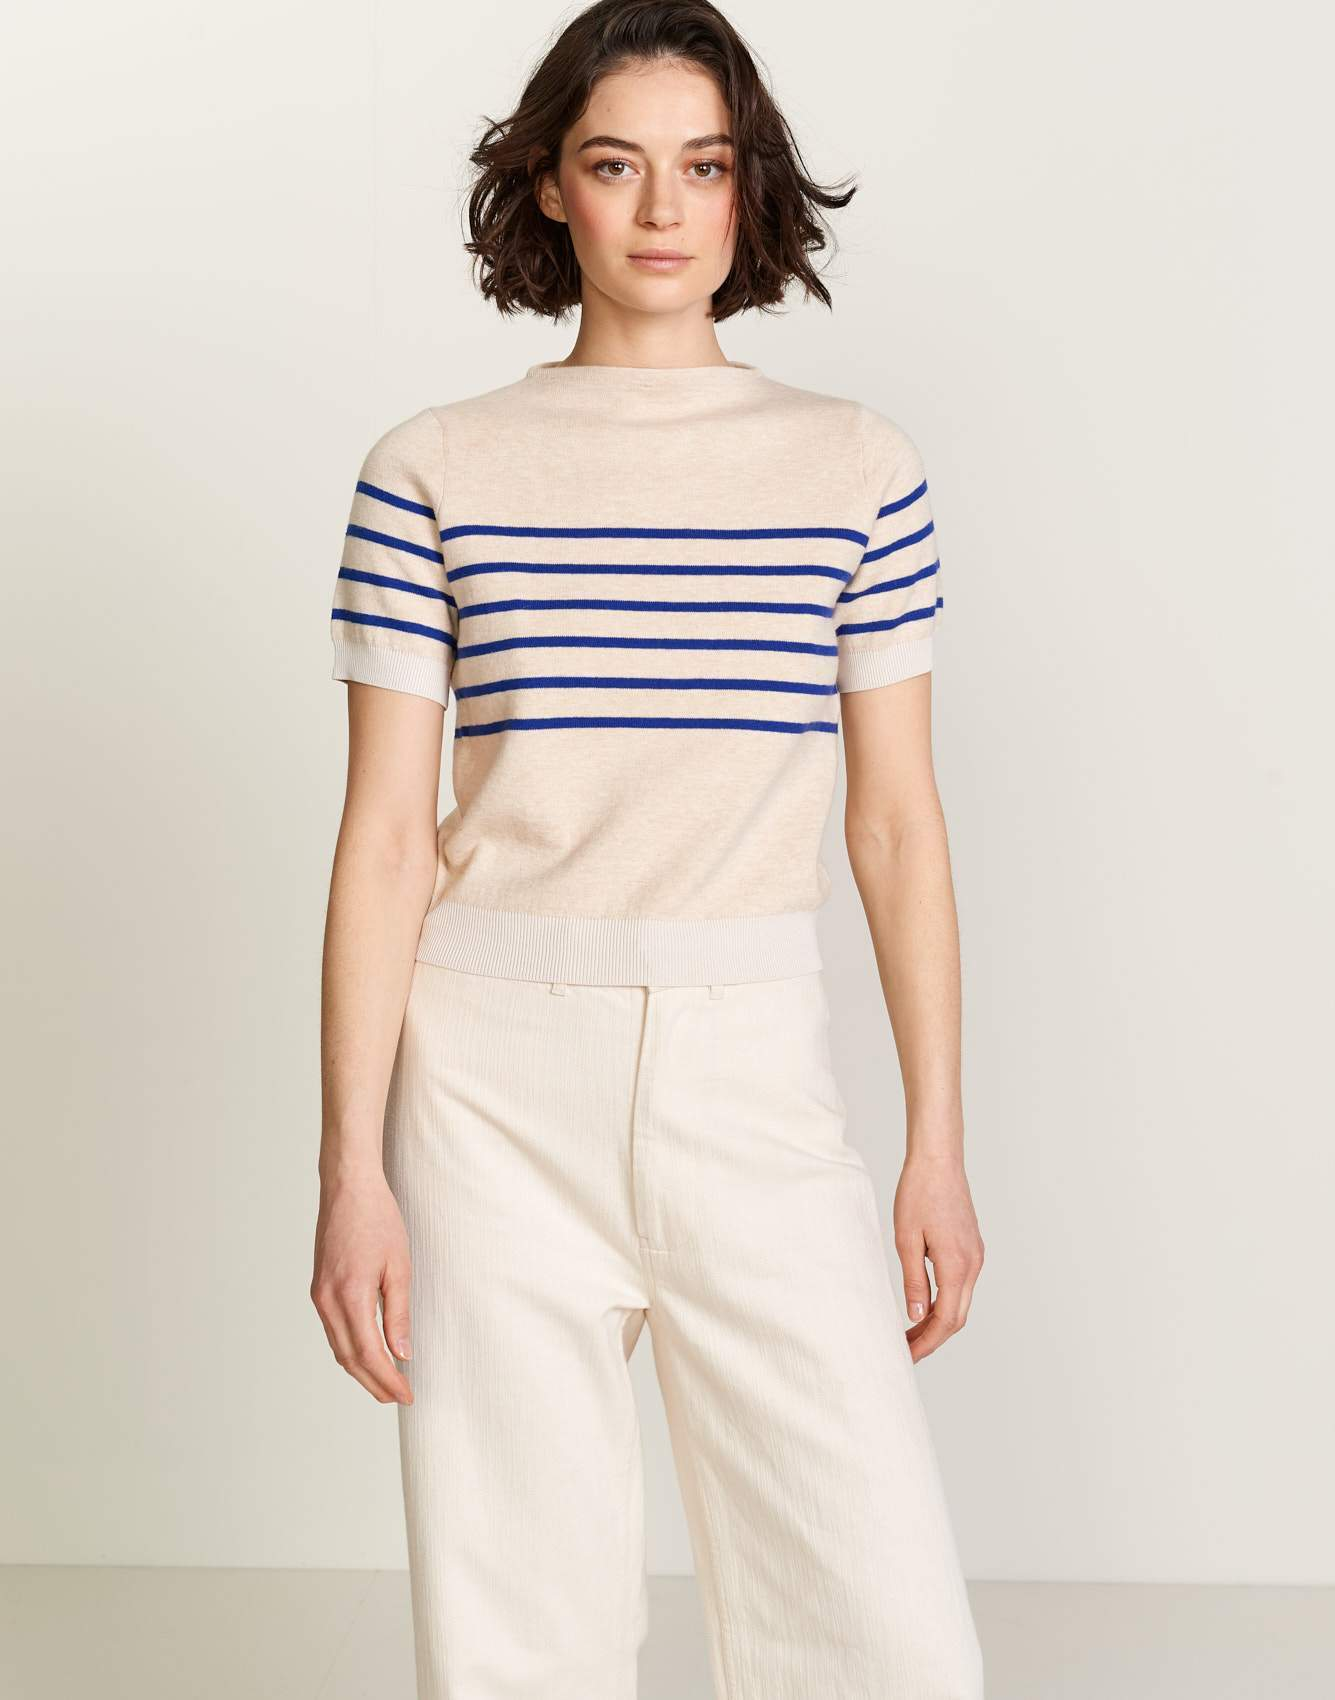 Bellerose white and blue striped knit sweater for women